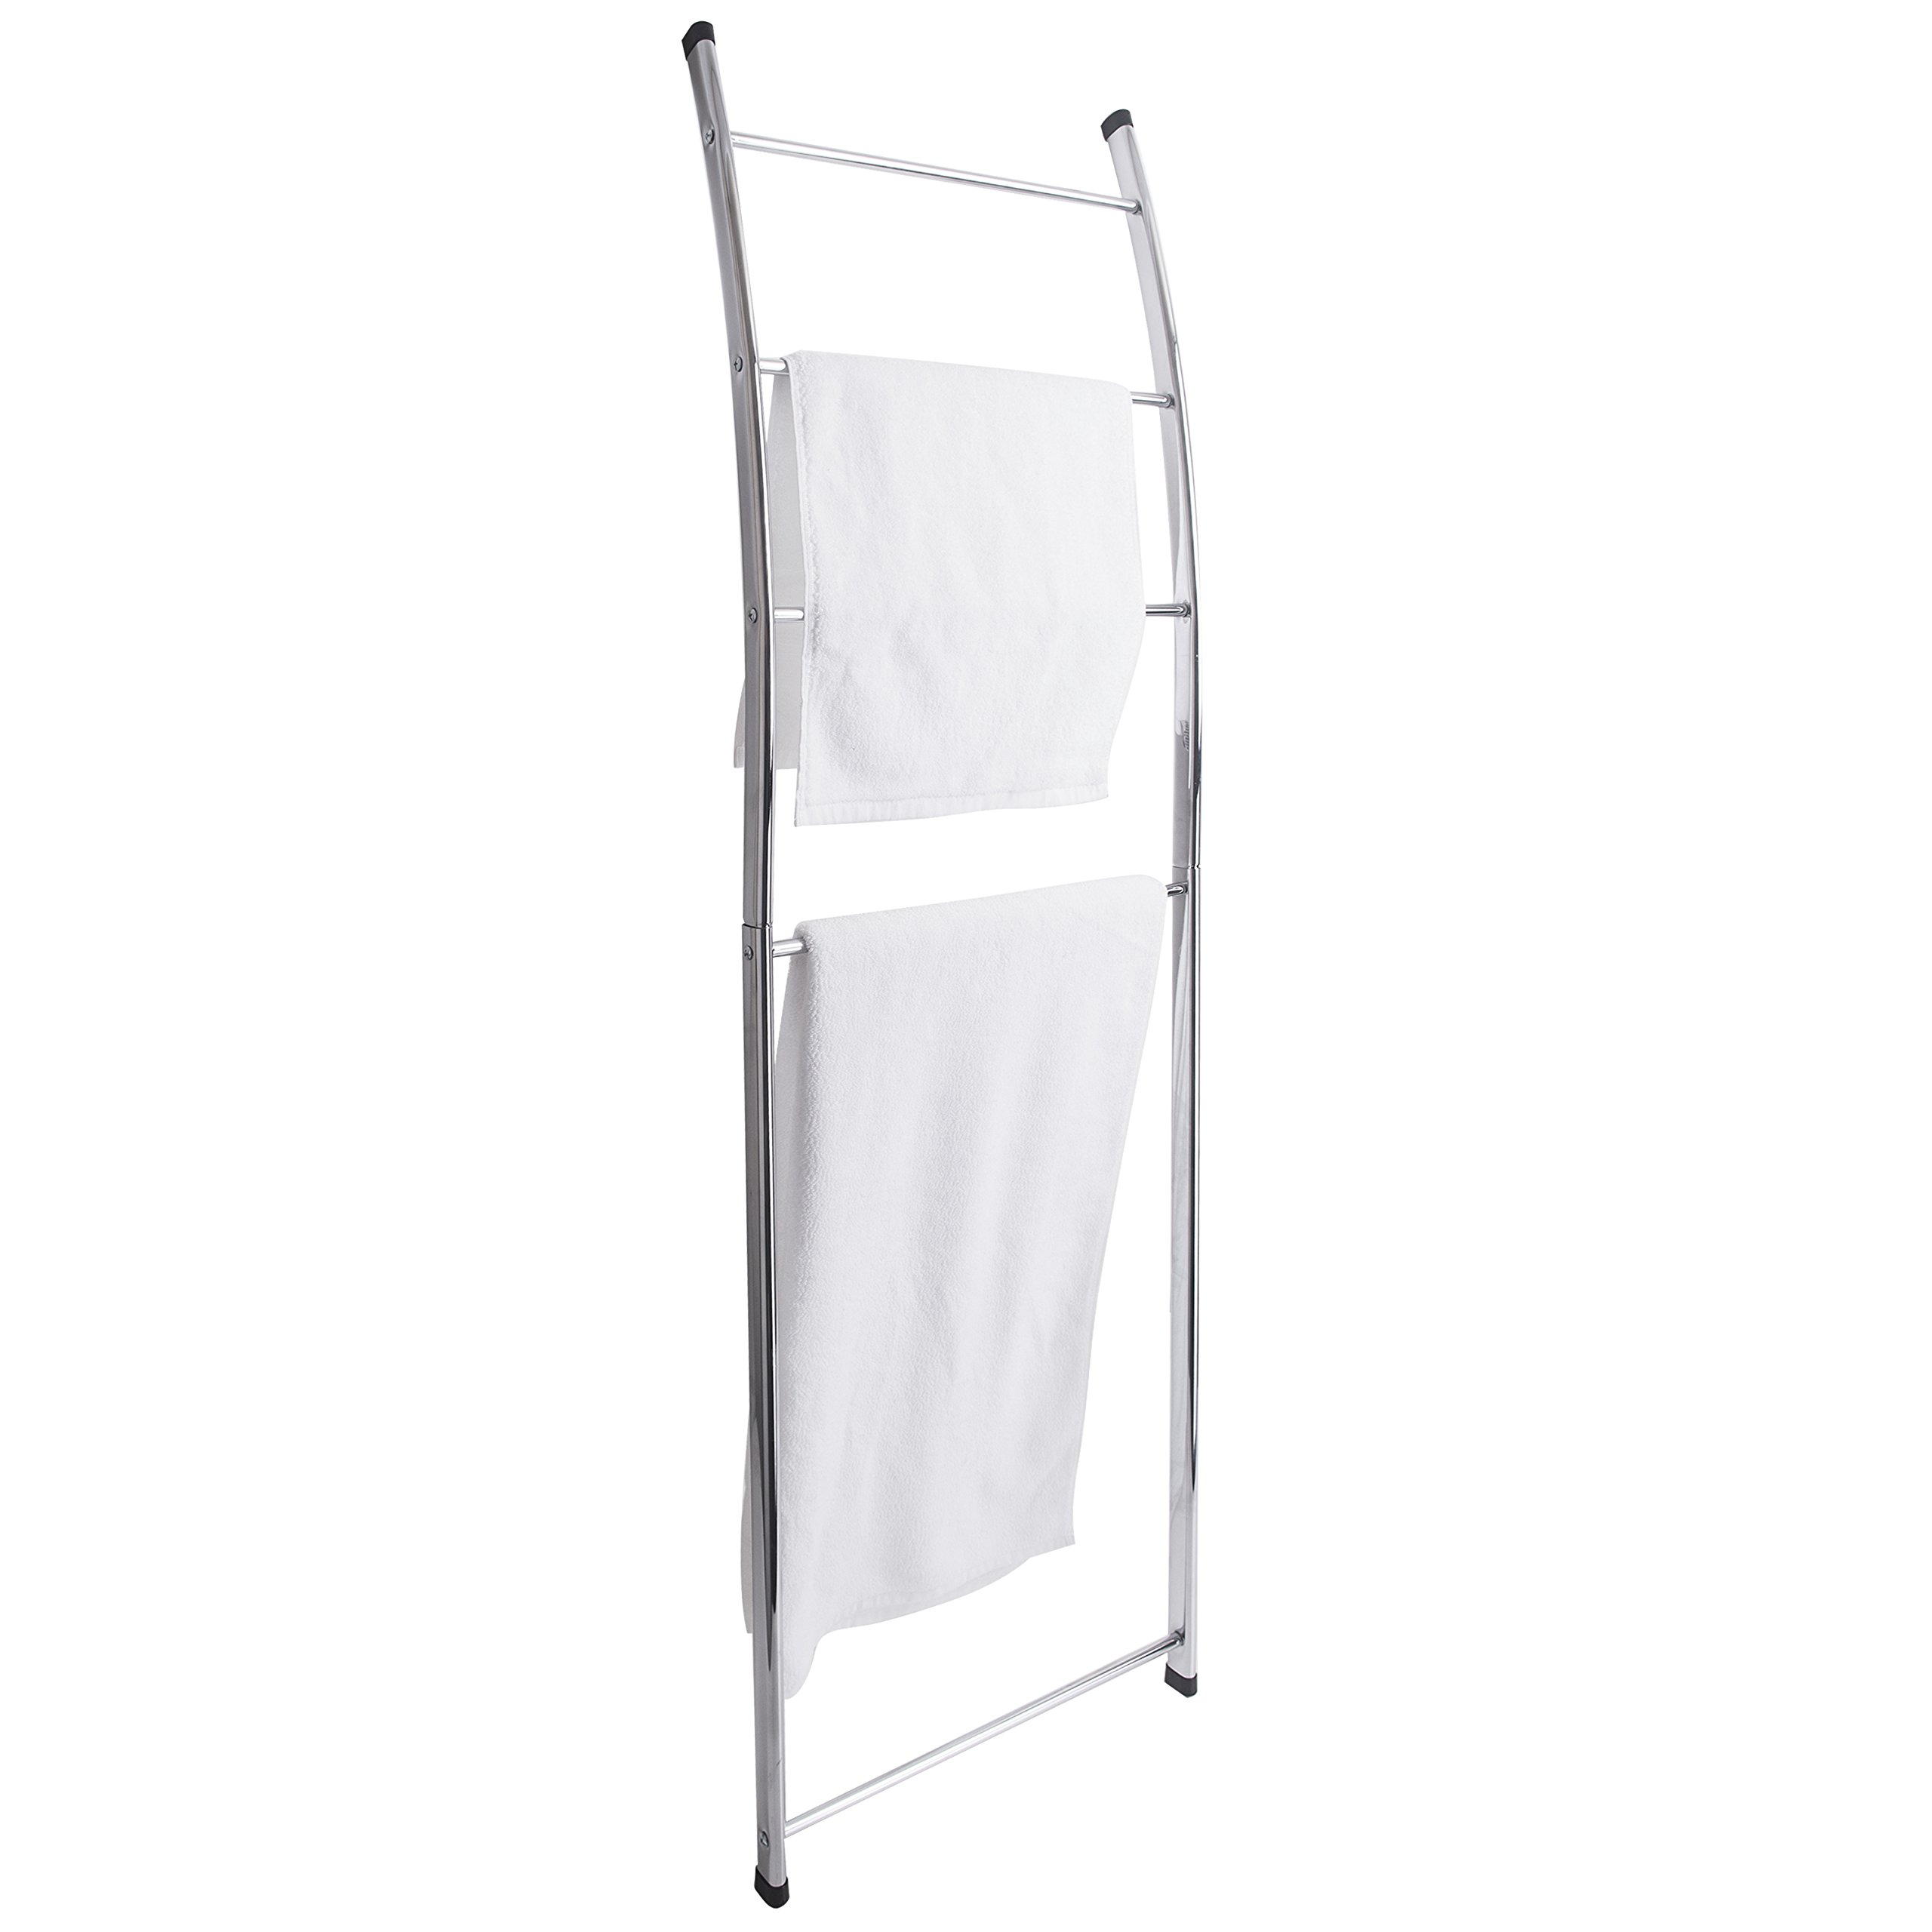 MyGift 4 Bar Chrome-Plated Bath Towel Ladder, Wall-Leaning Drying Rack Stand by MyGift